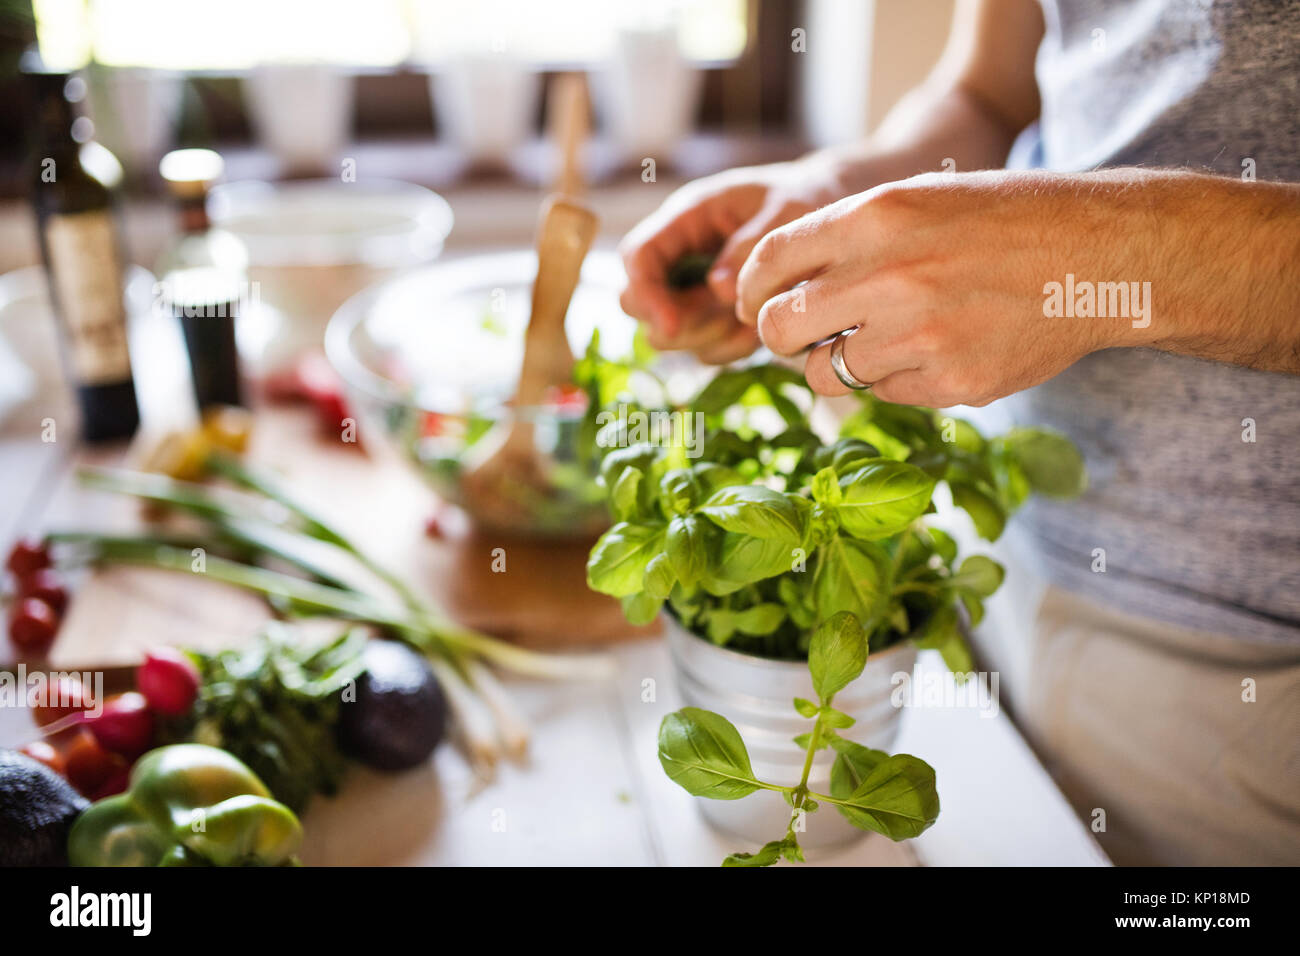 Unrecognizable young man cooking. - Stock Image